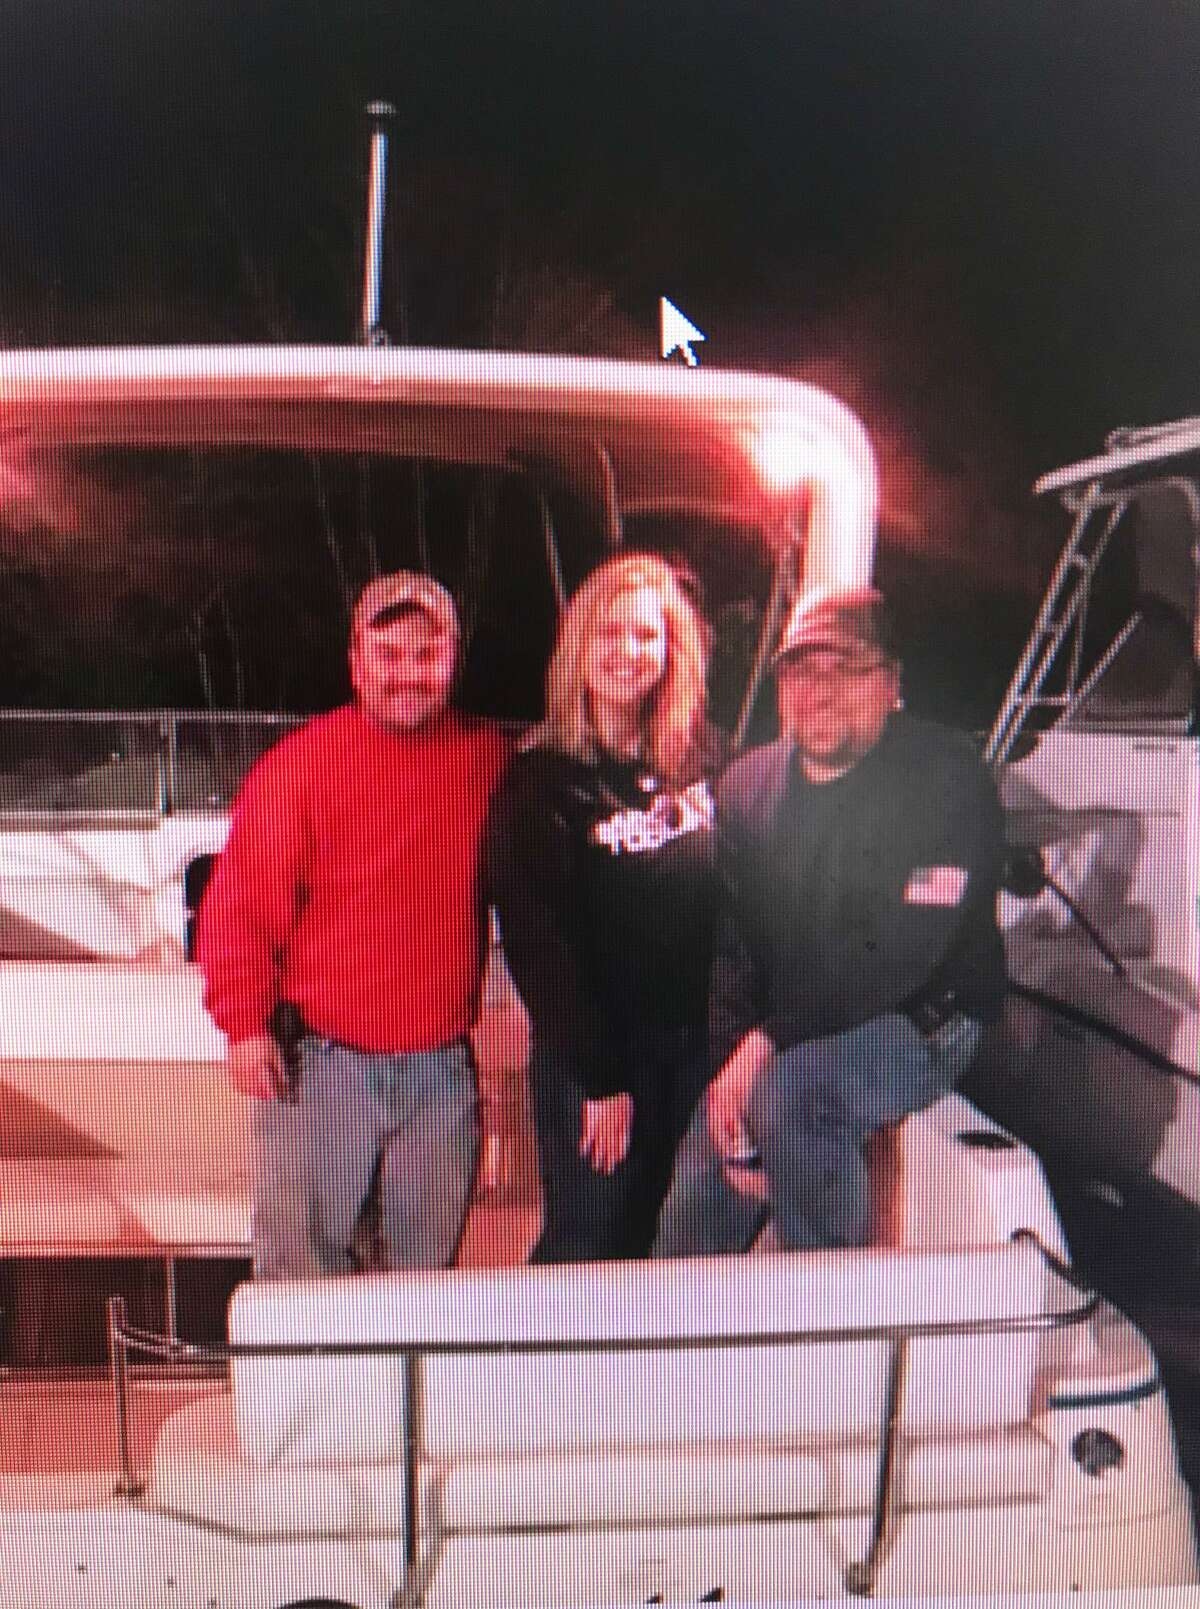 Skipper Joe Hoyt, left, and passengers Morgan Castros and Joey Romaniello saved four kayakers who had been thrown into the water of Wallacks Point early Monday evening in Stamford.